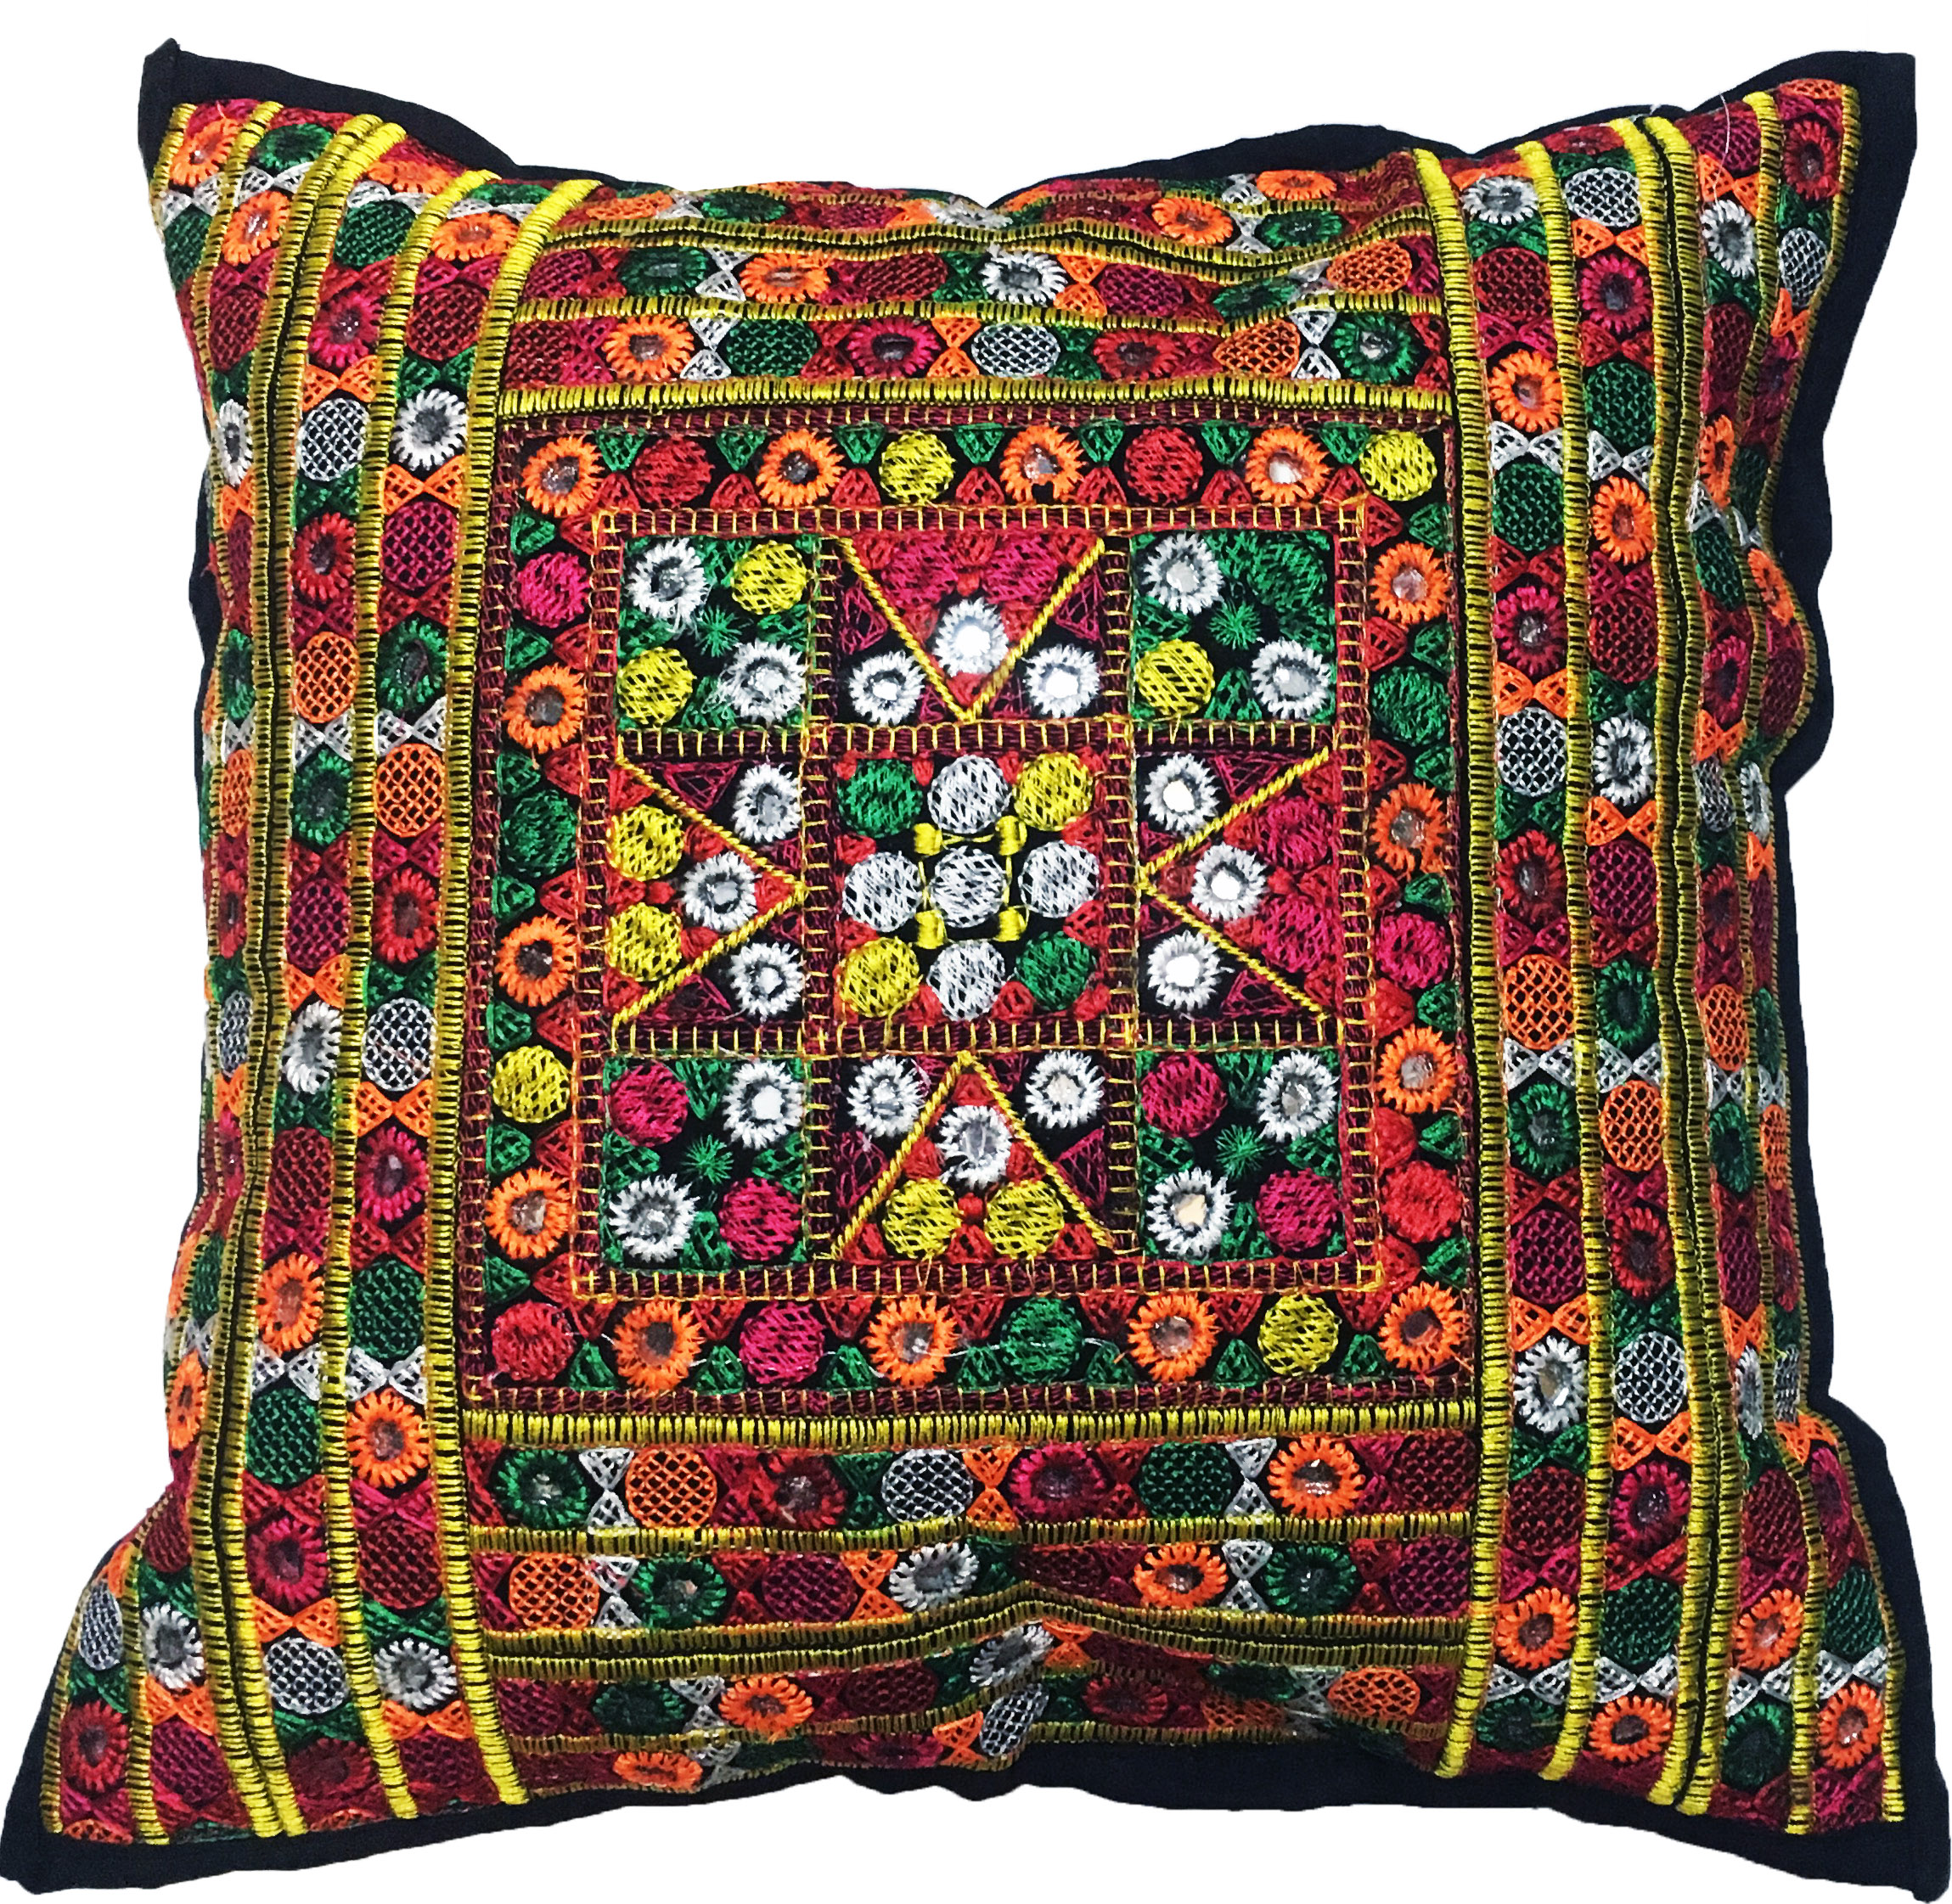 pin case it cheap decor now buy pillows tile cushion persian cover pillow decorative